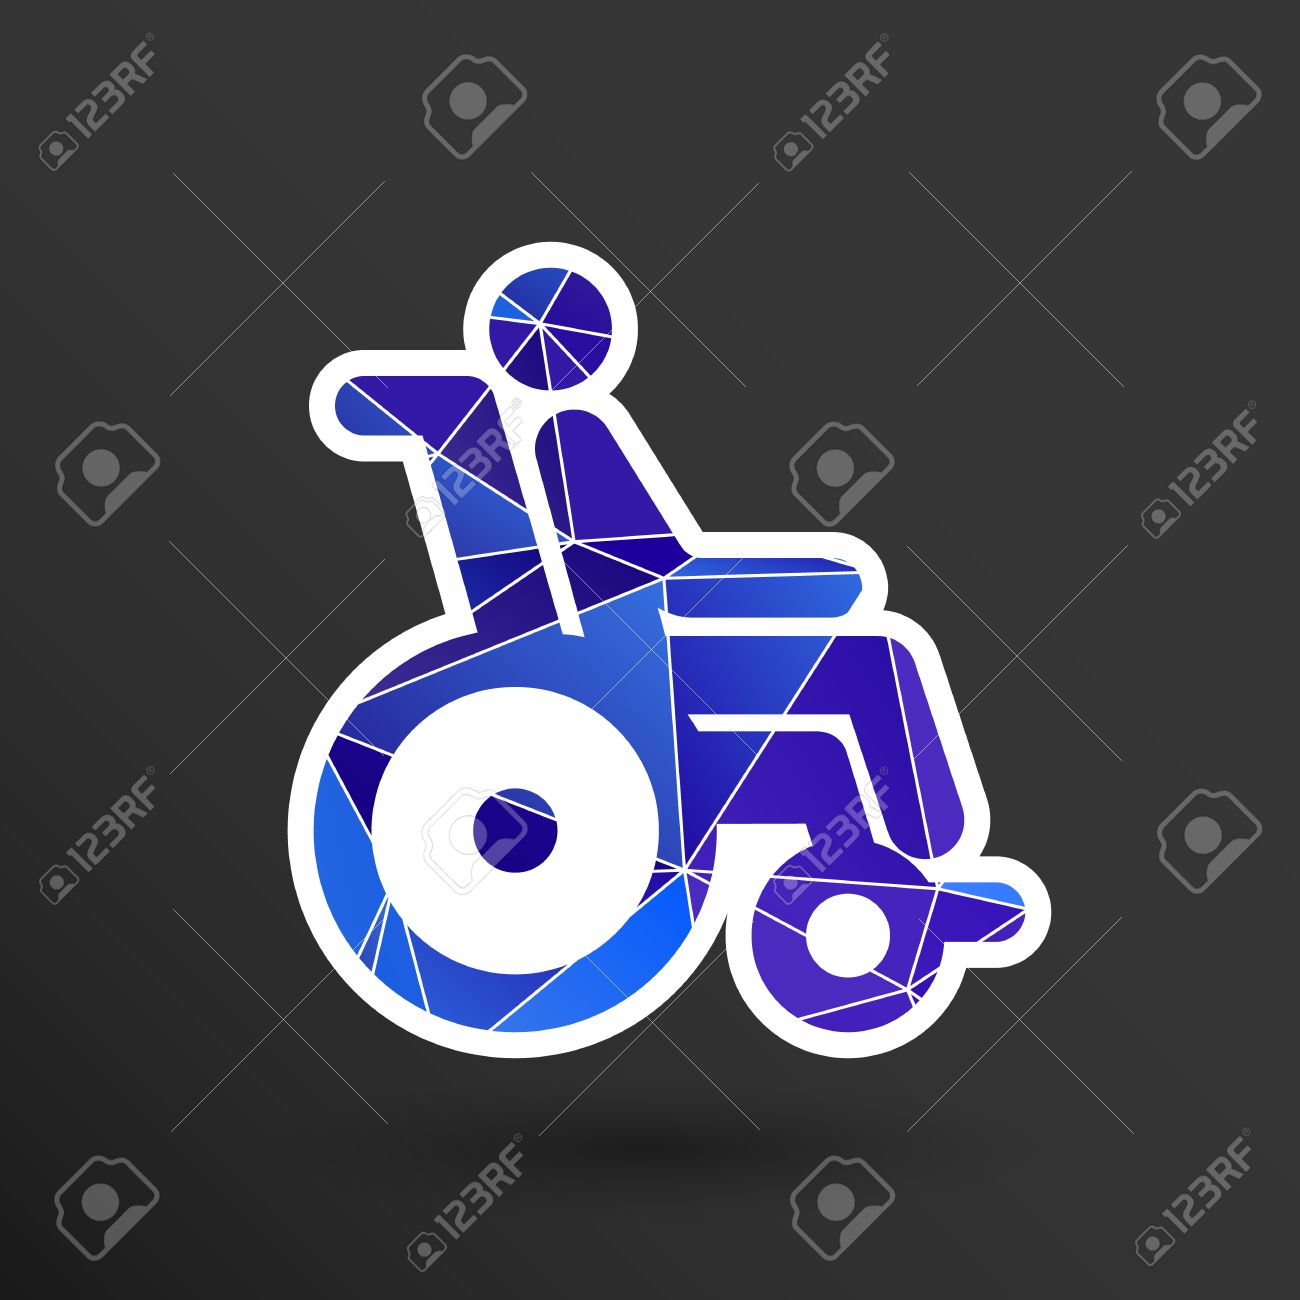 Handicap Handicapped Chair Wheel Accessible An Invalid Icon. Royalty ...